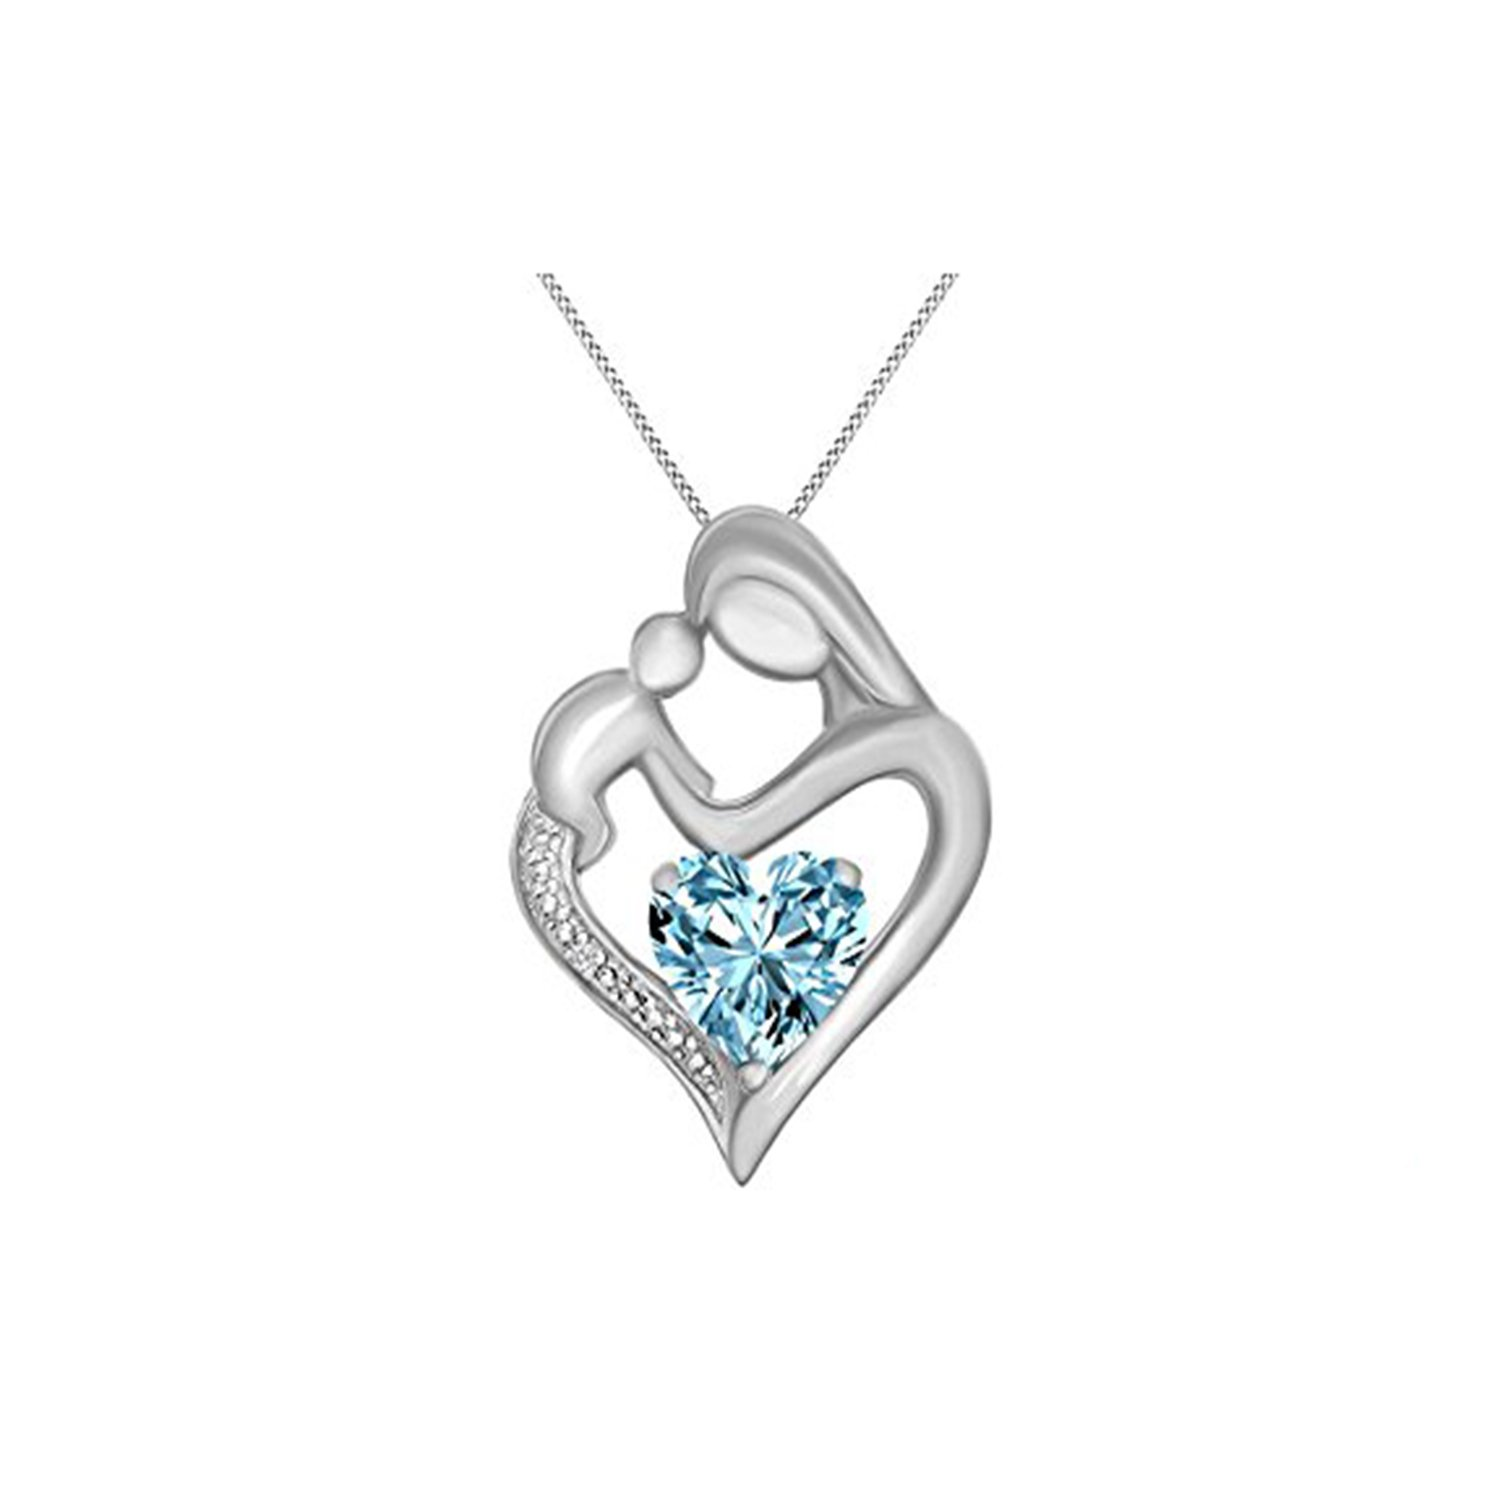 Ashley Jewels Simulated Diamond Studded Elegant Fashion Charm Heart MOM Pendant Necklace in 14K White Gold Plated With Box Chain